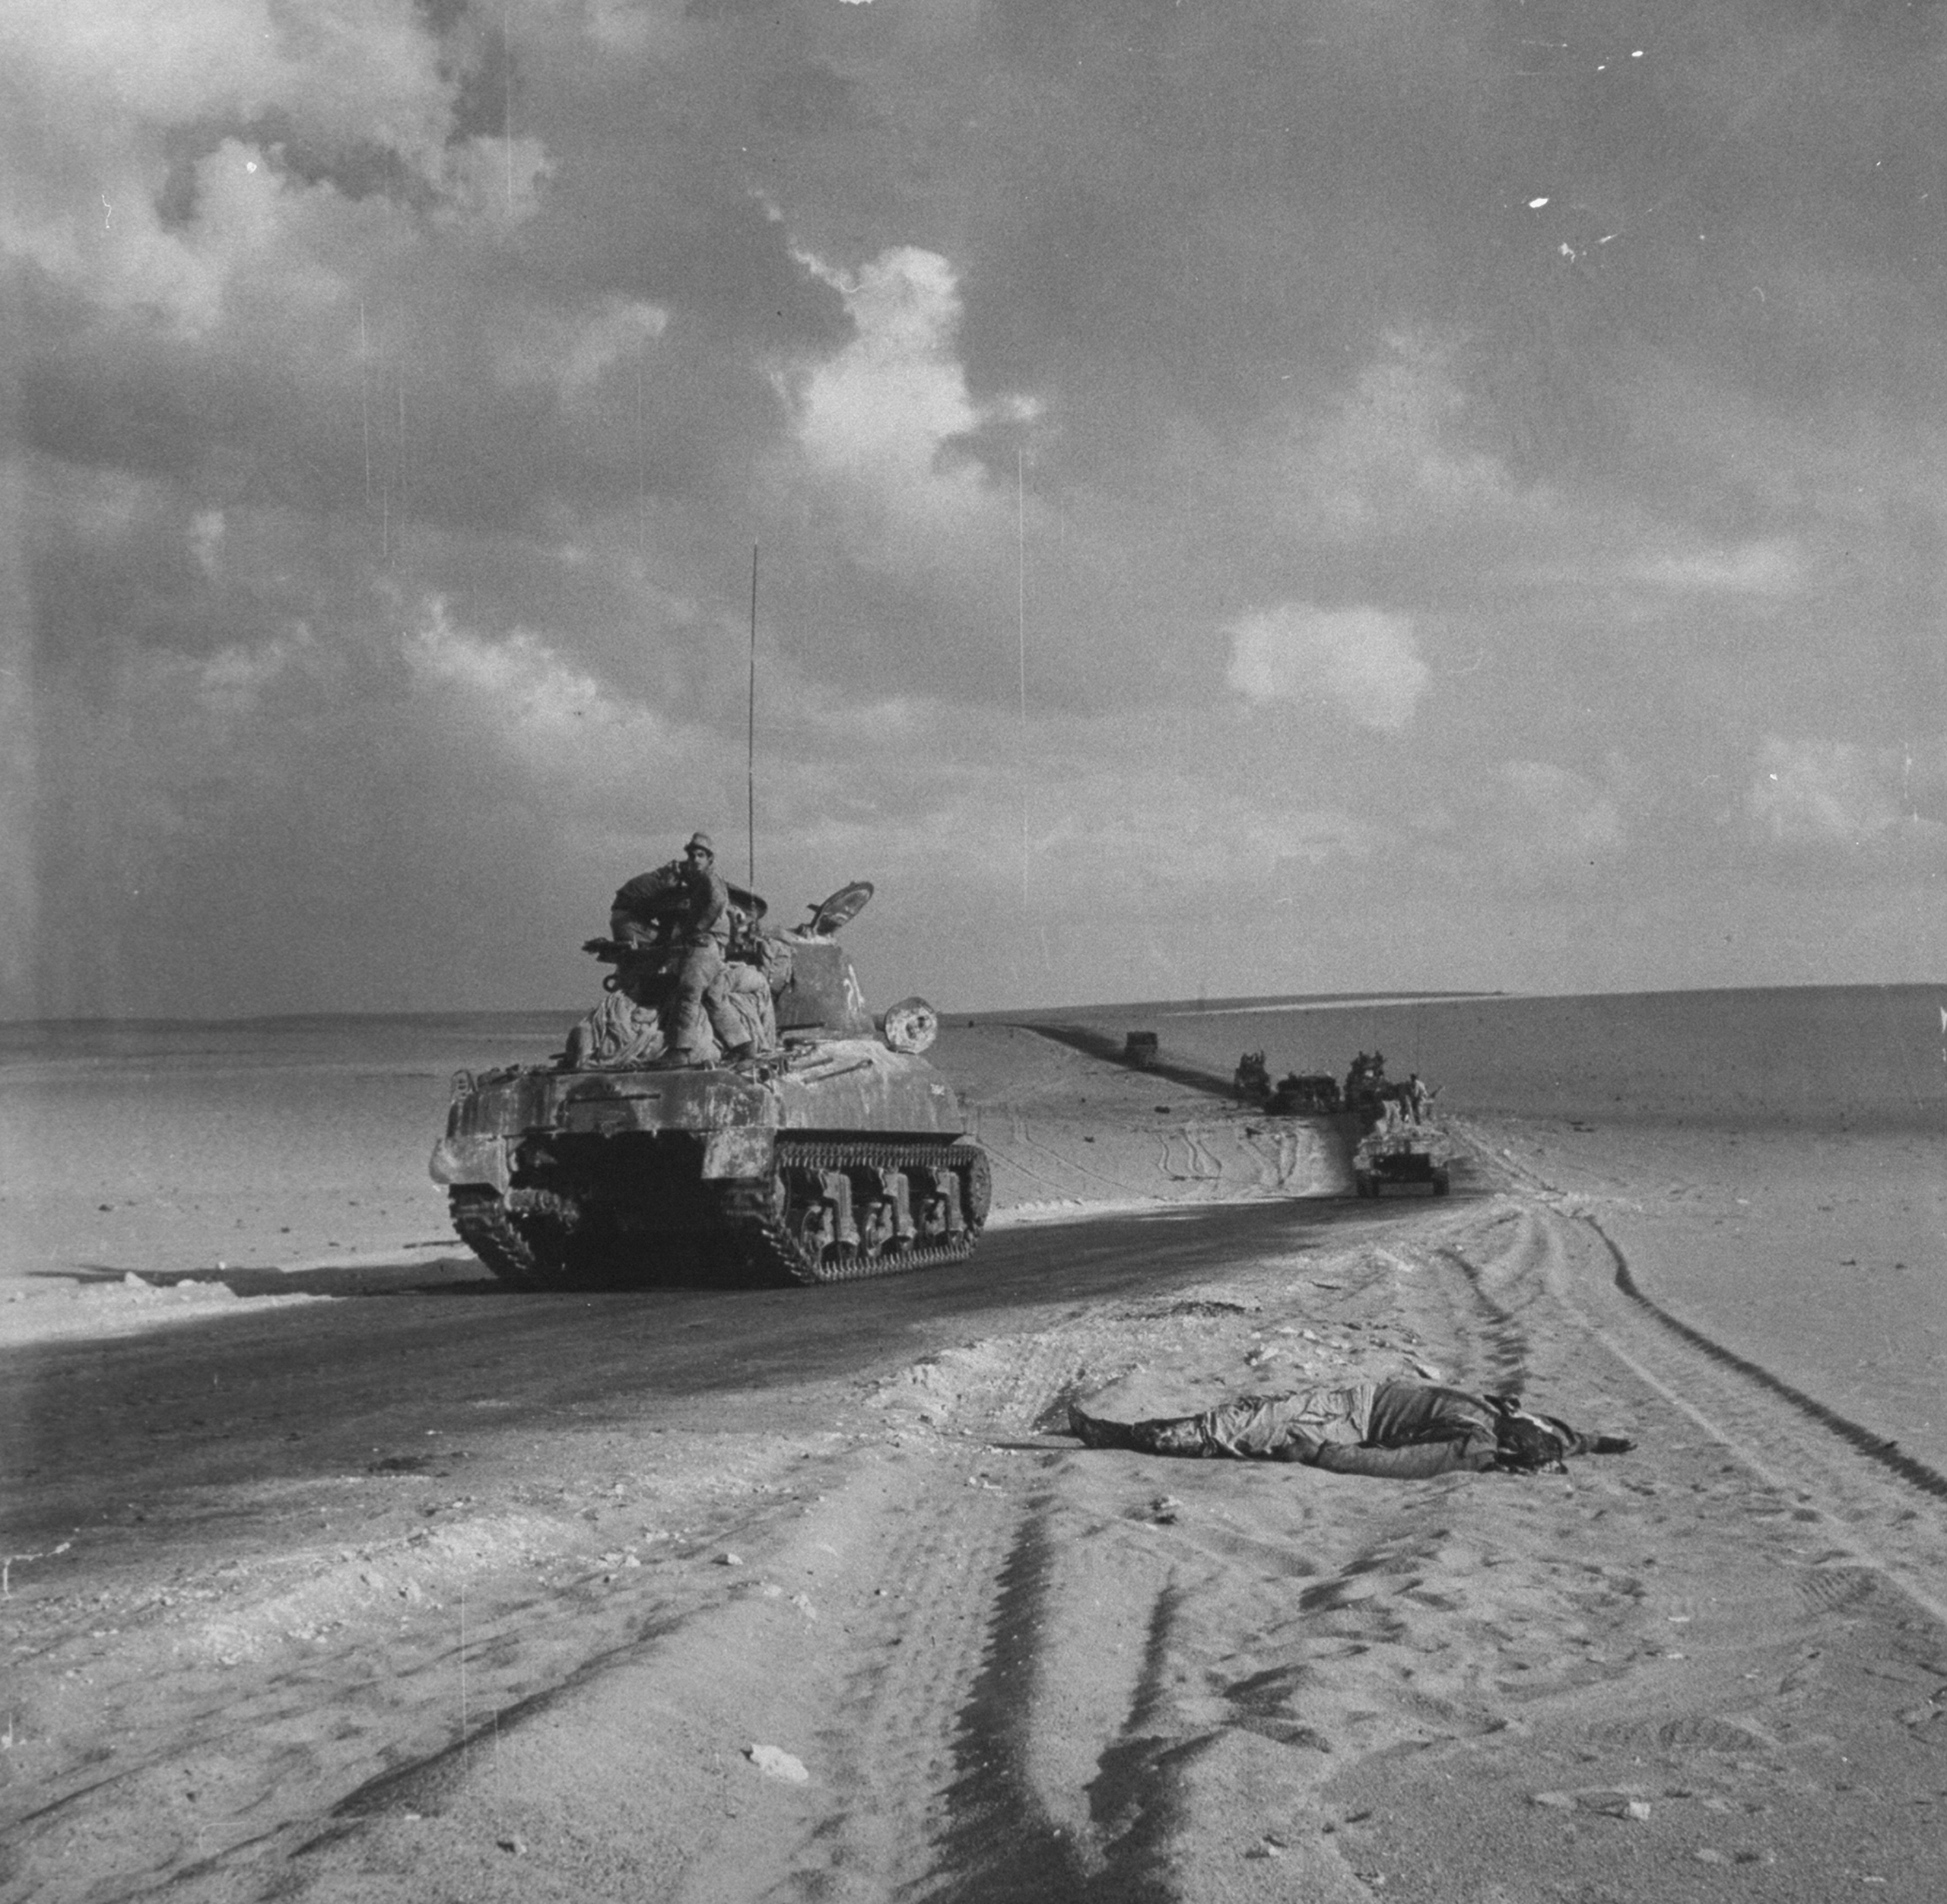 Line of tanks manned by Israelis going through desert, a dead soldier in foreground, 1956.